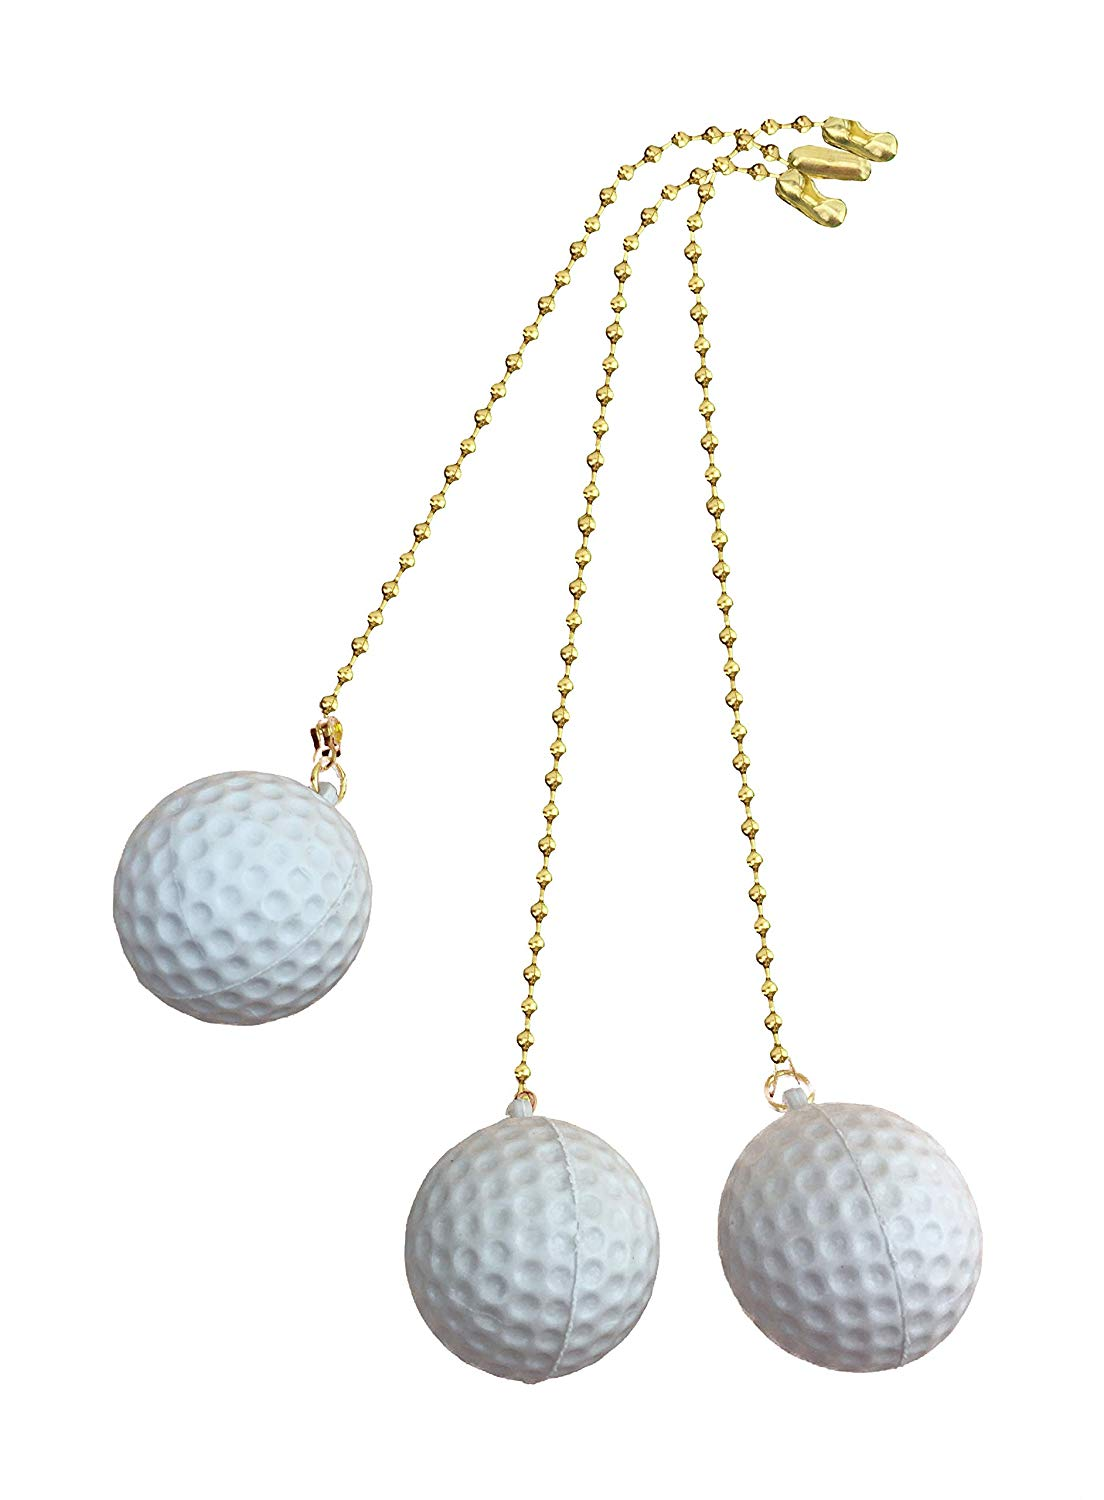 Decorative Golf Ball Sports Ceiling fan pull with beaded chain - 3 Pack - FA1004